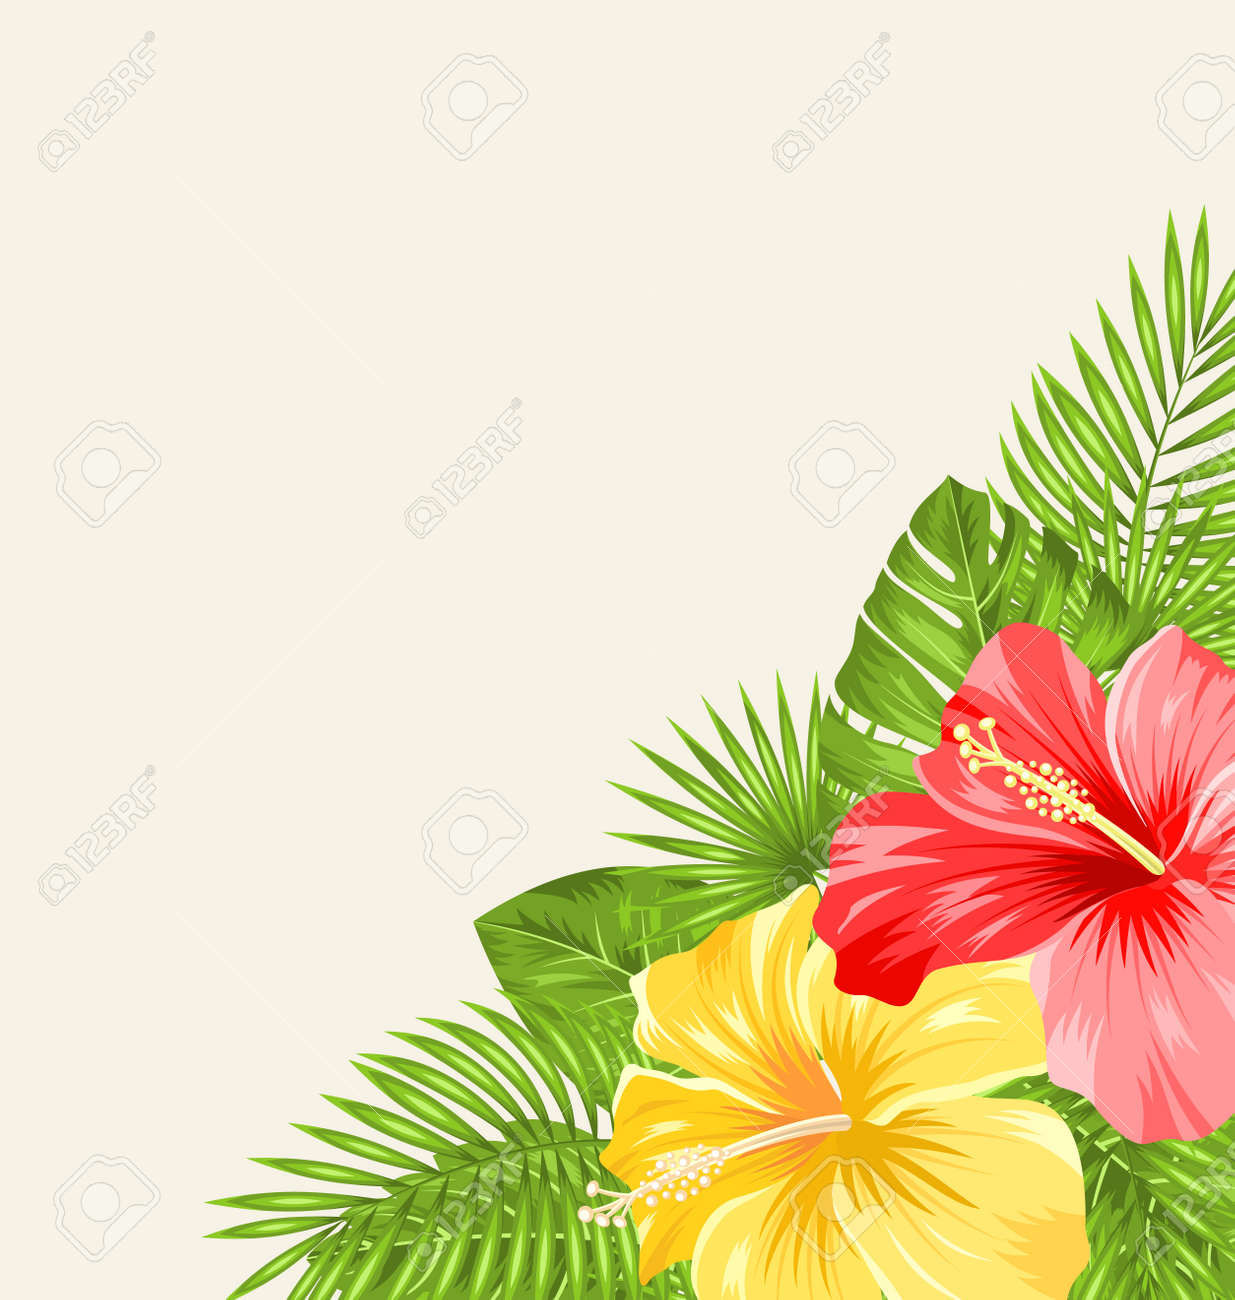 Illustration vintage background with colorful hibiscus flowers illustration vintage background with colorful hibiscus flowers copy space for your text vector stock izmirmasajfo